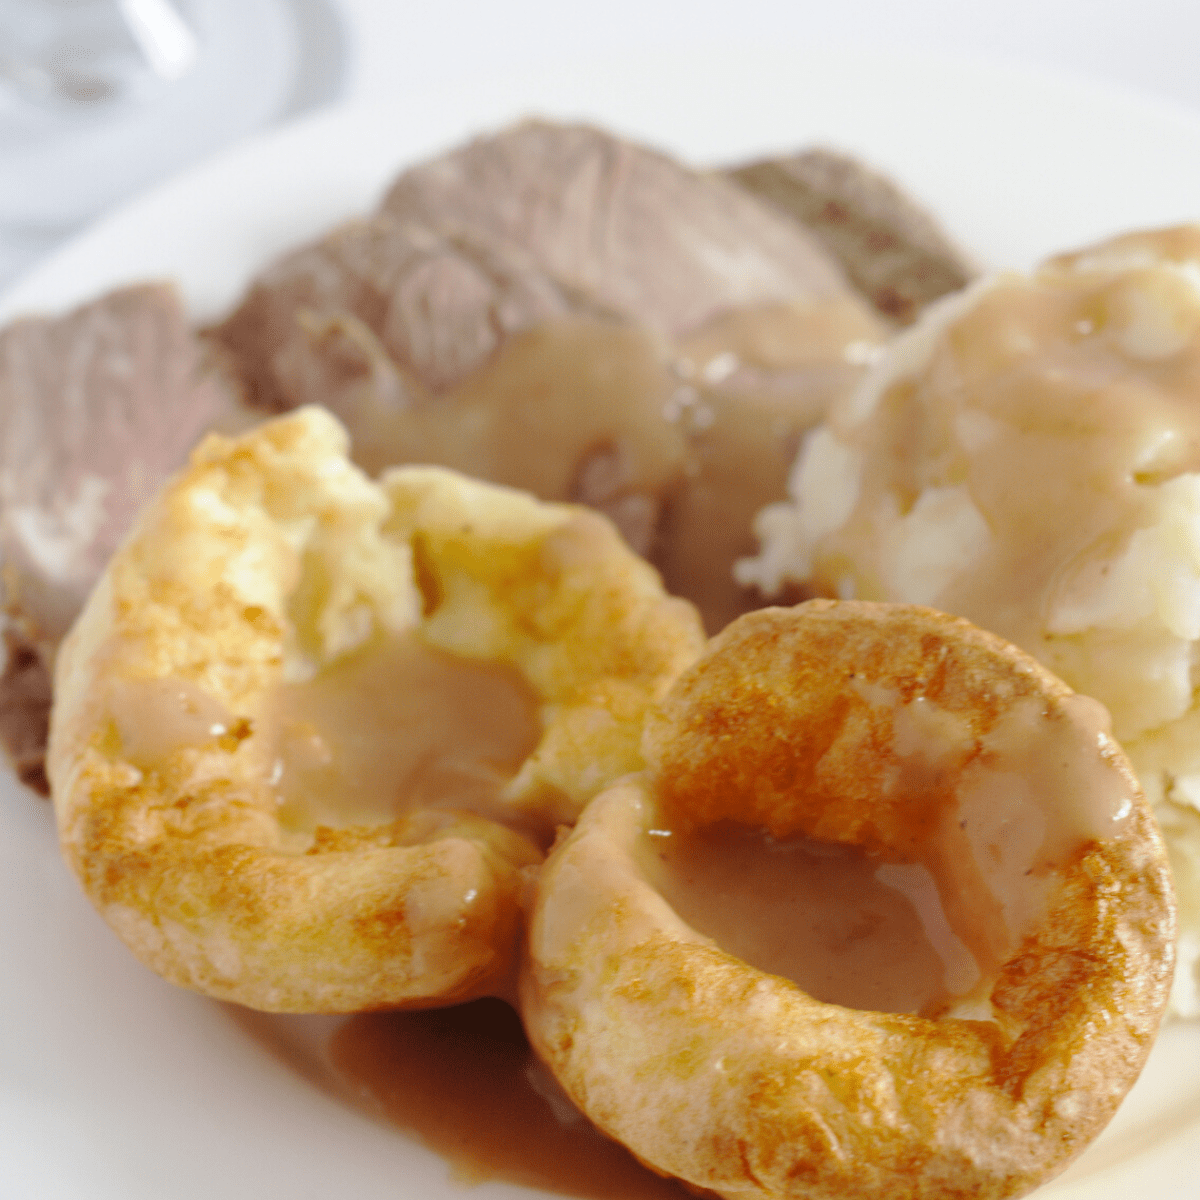 Yorkshire Puddings on a dinner plate.